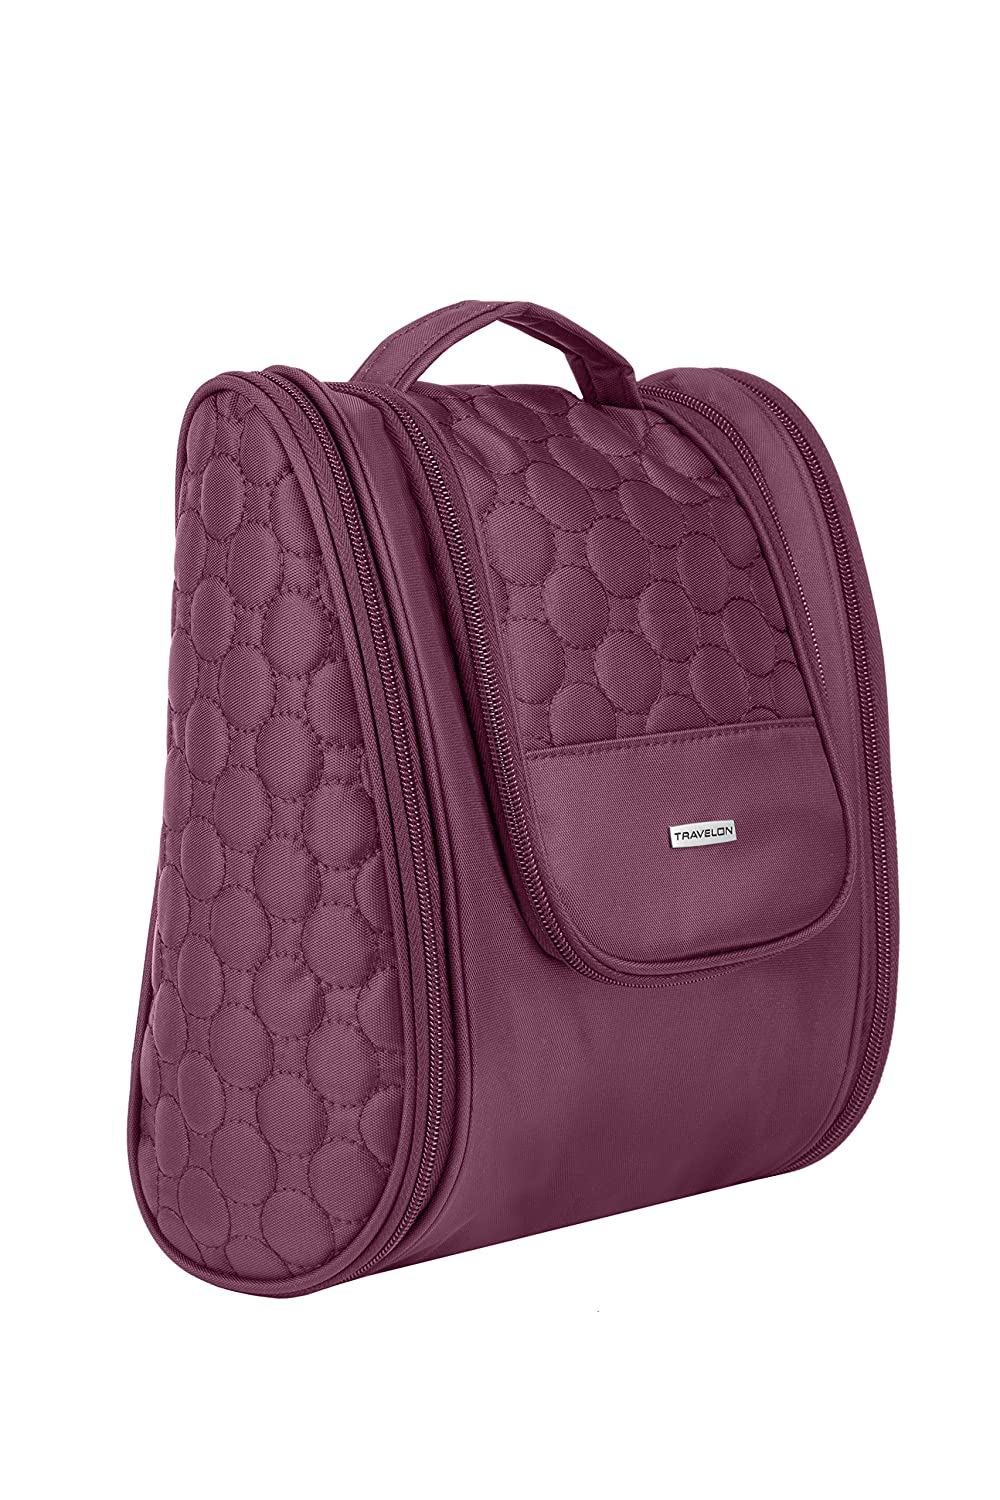 Travelon 3 Compartment Hanging Toiletry Kit Travel Accessory, Berry Quilted 43141 97U